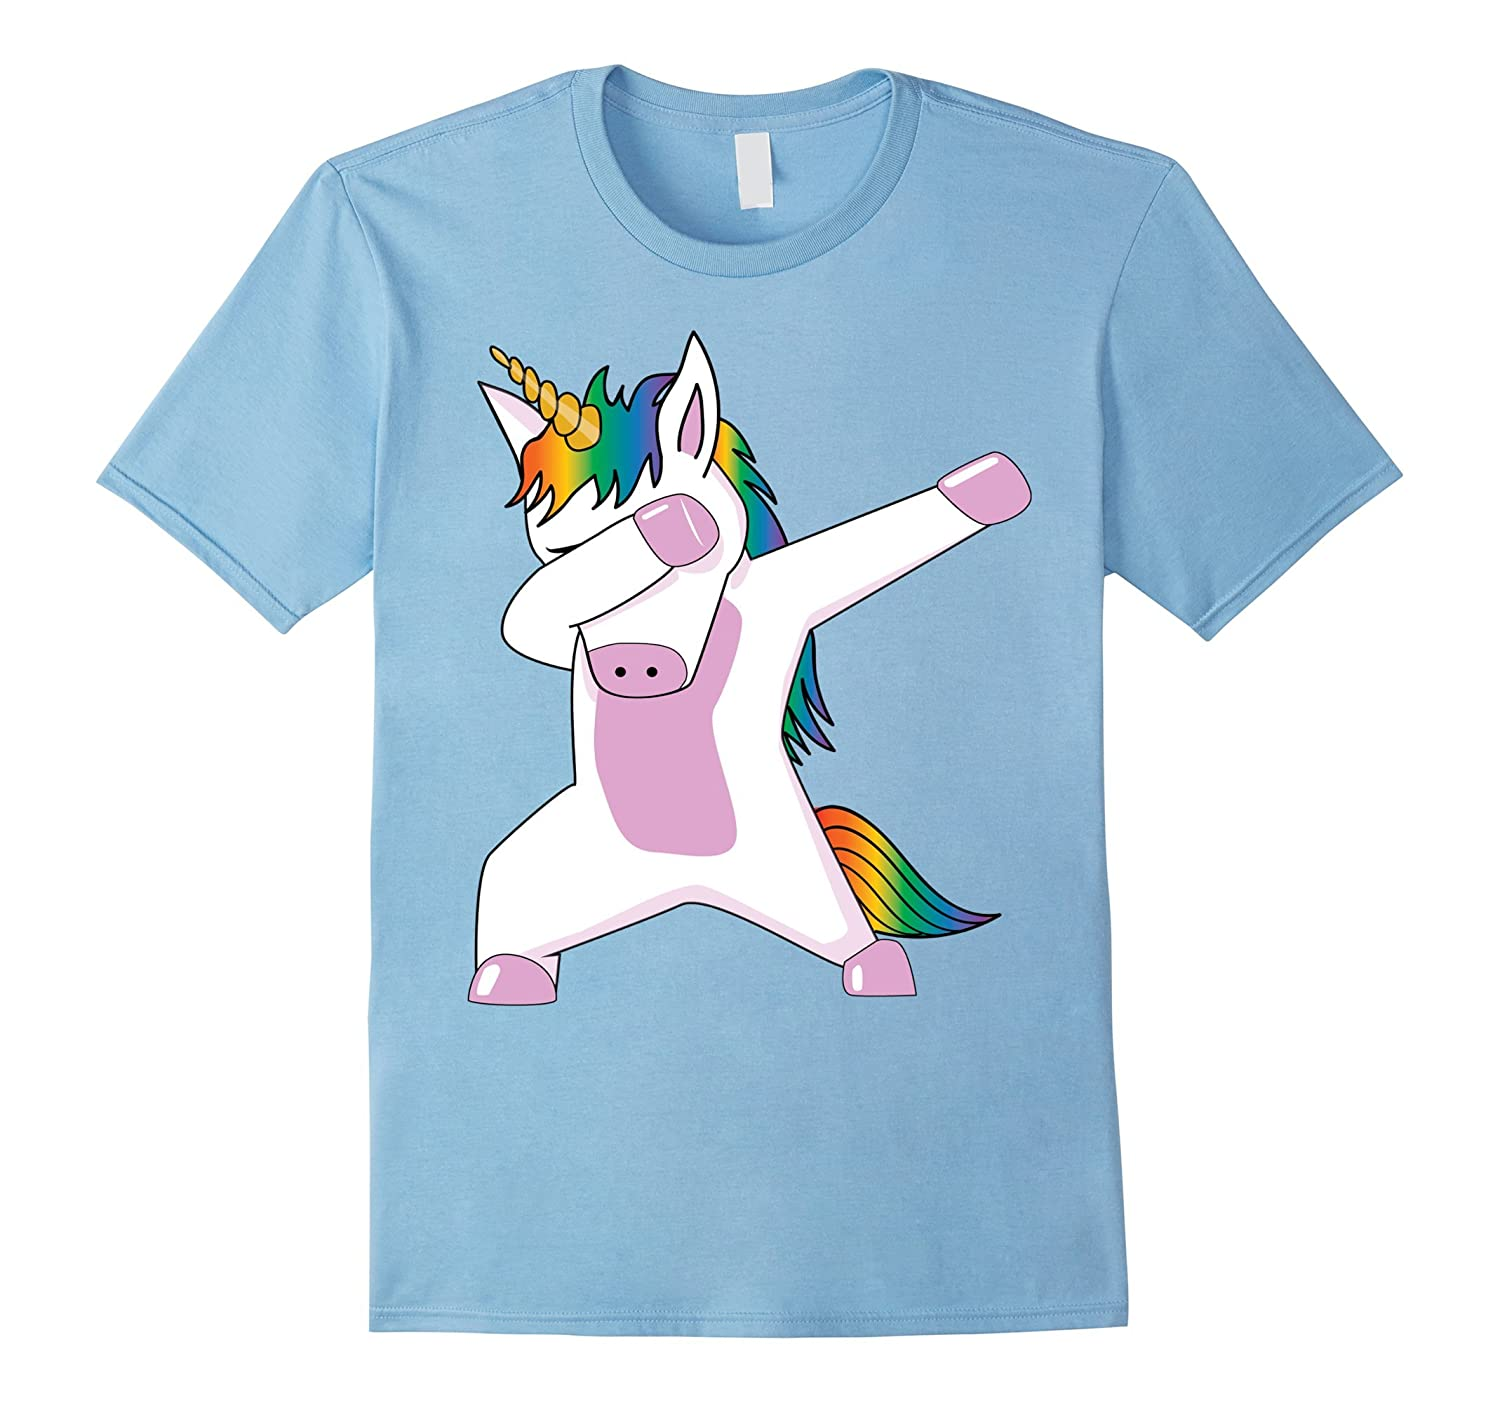 Dabbing Unicorn T-Shirt - Women's and Youth-CL